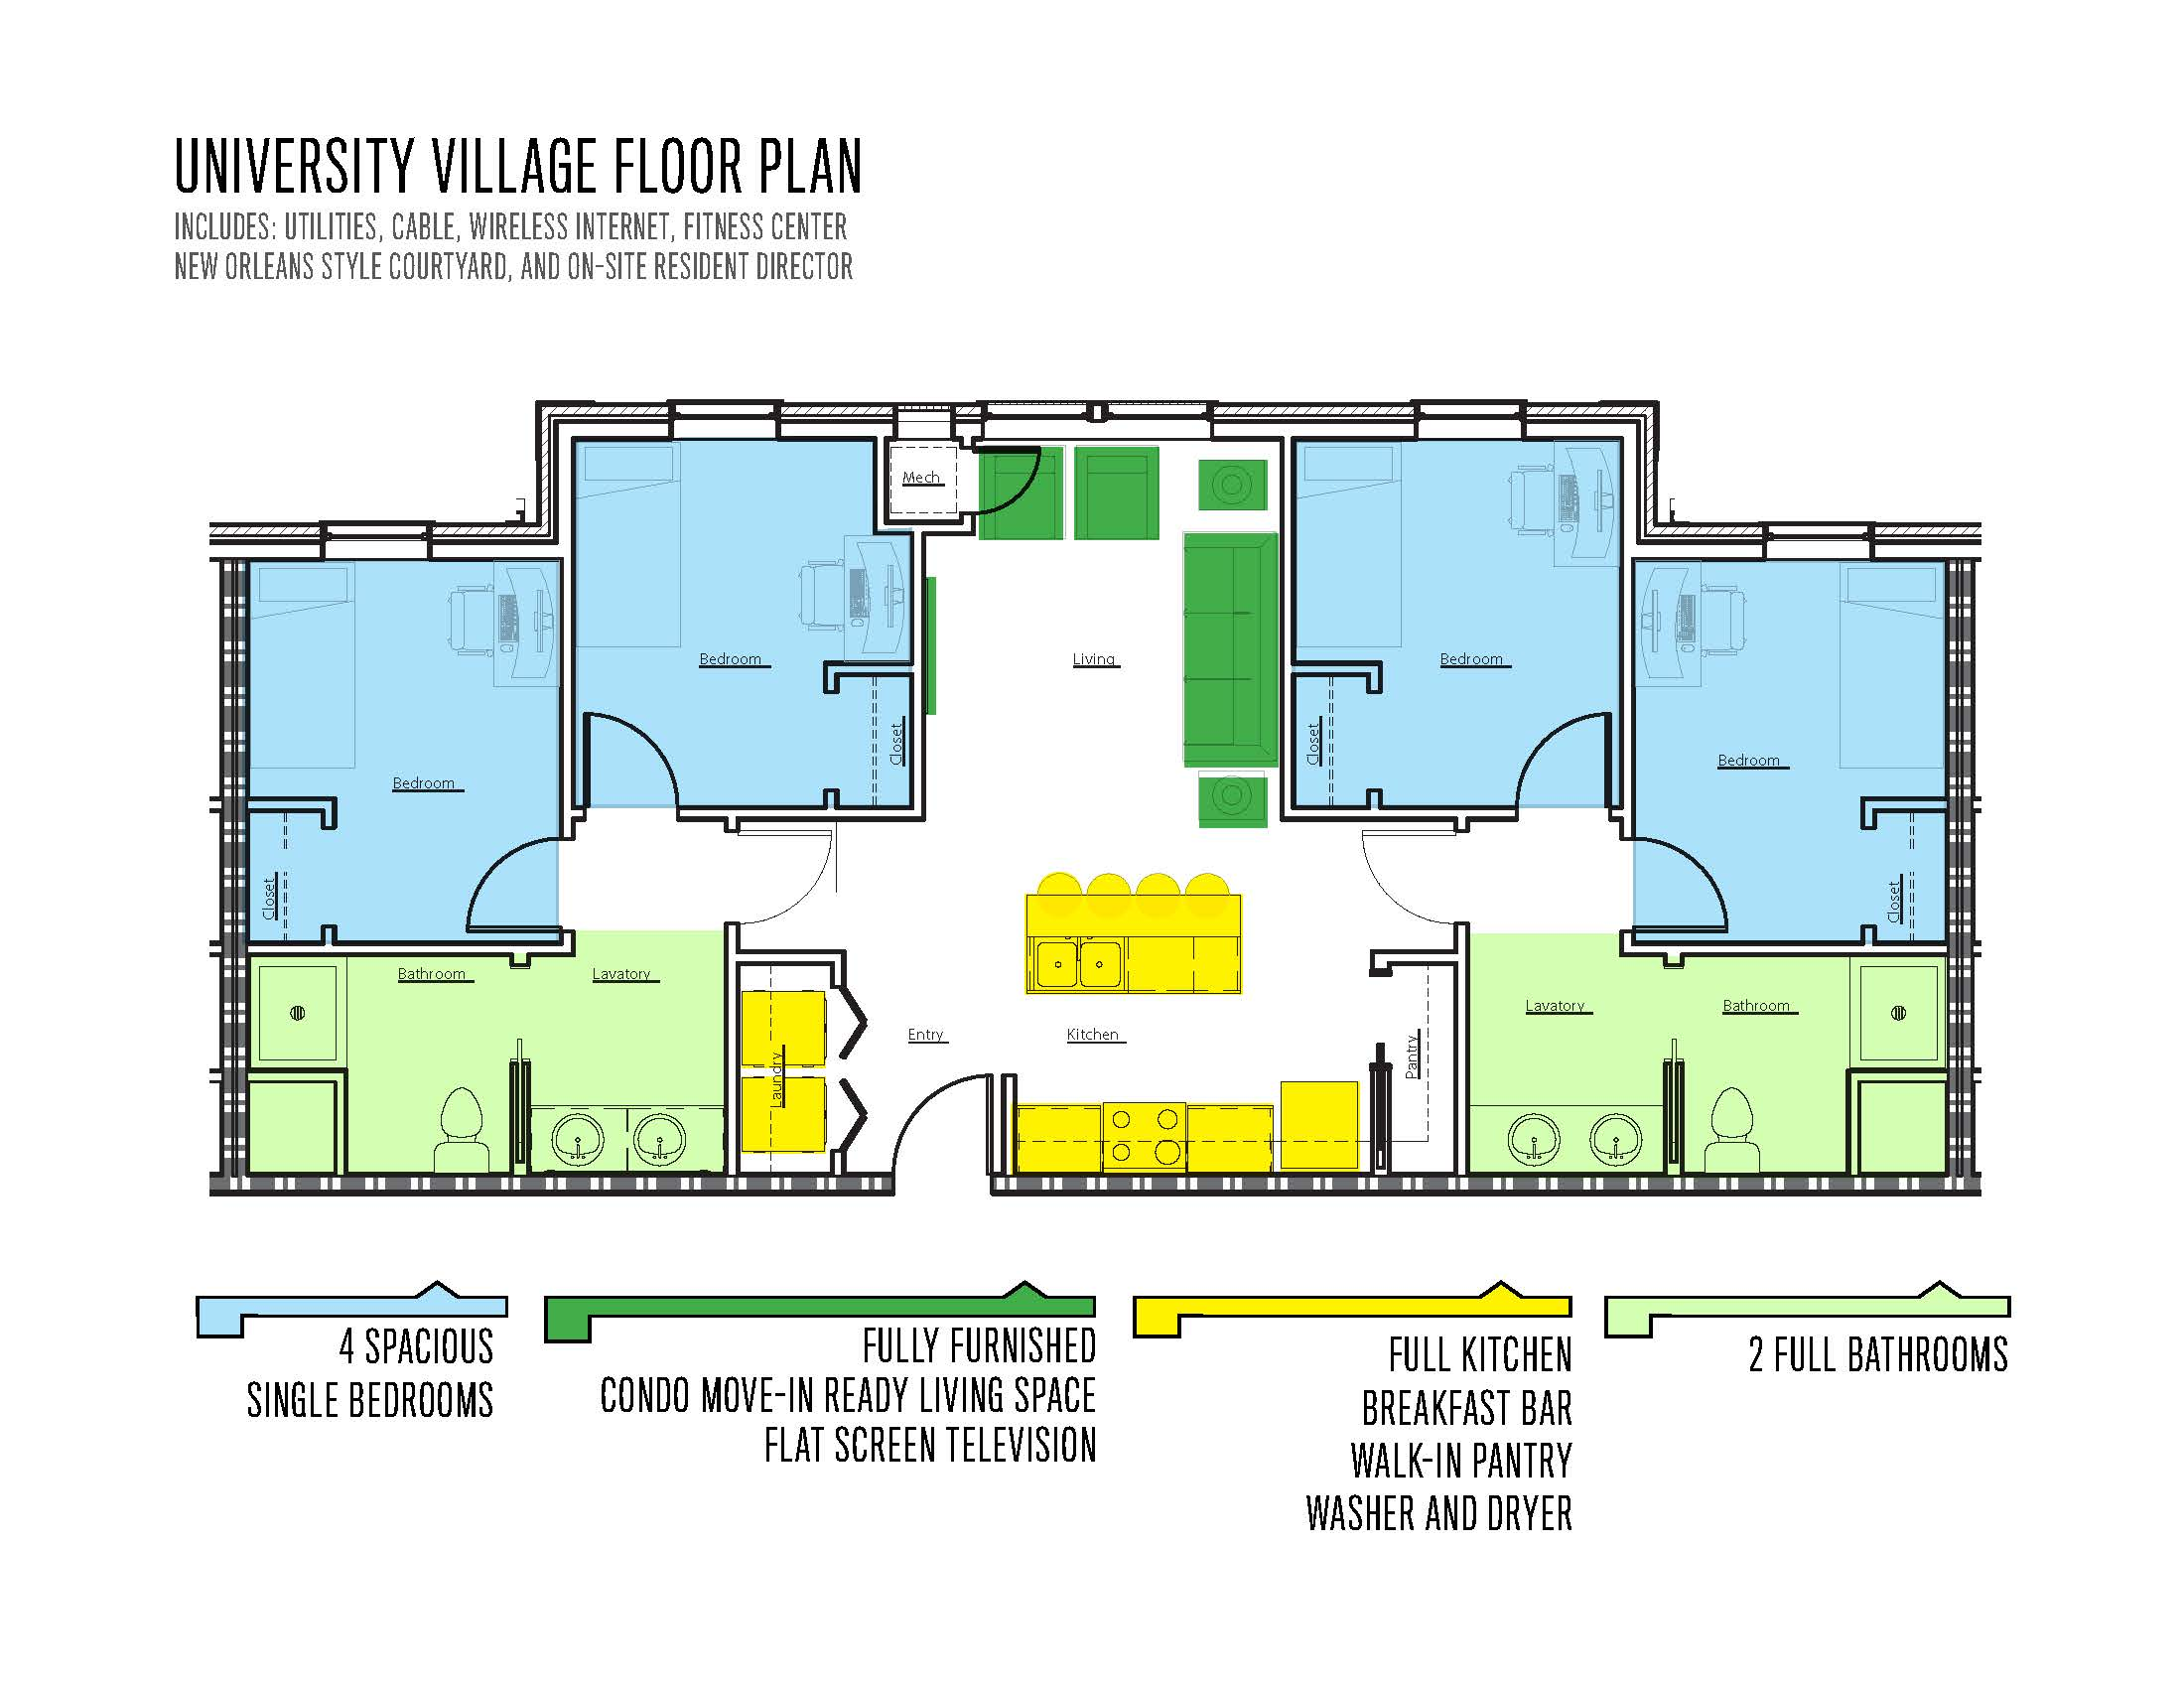 Yale University Dorm Floor Plans Announced exciting plans forYale University Dorm Floor Plans